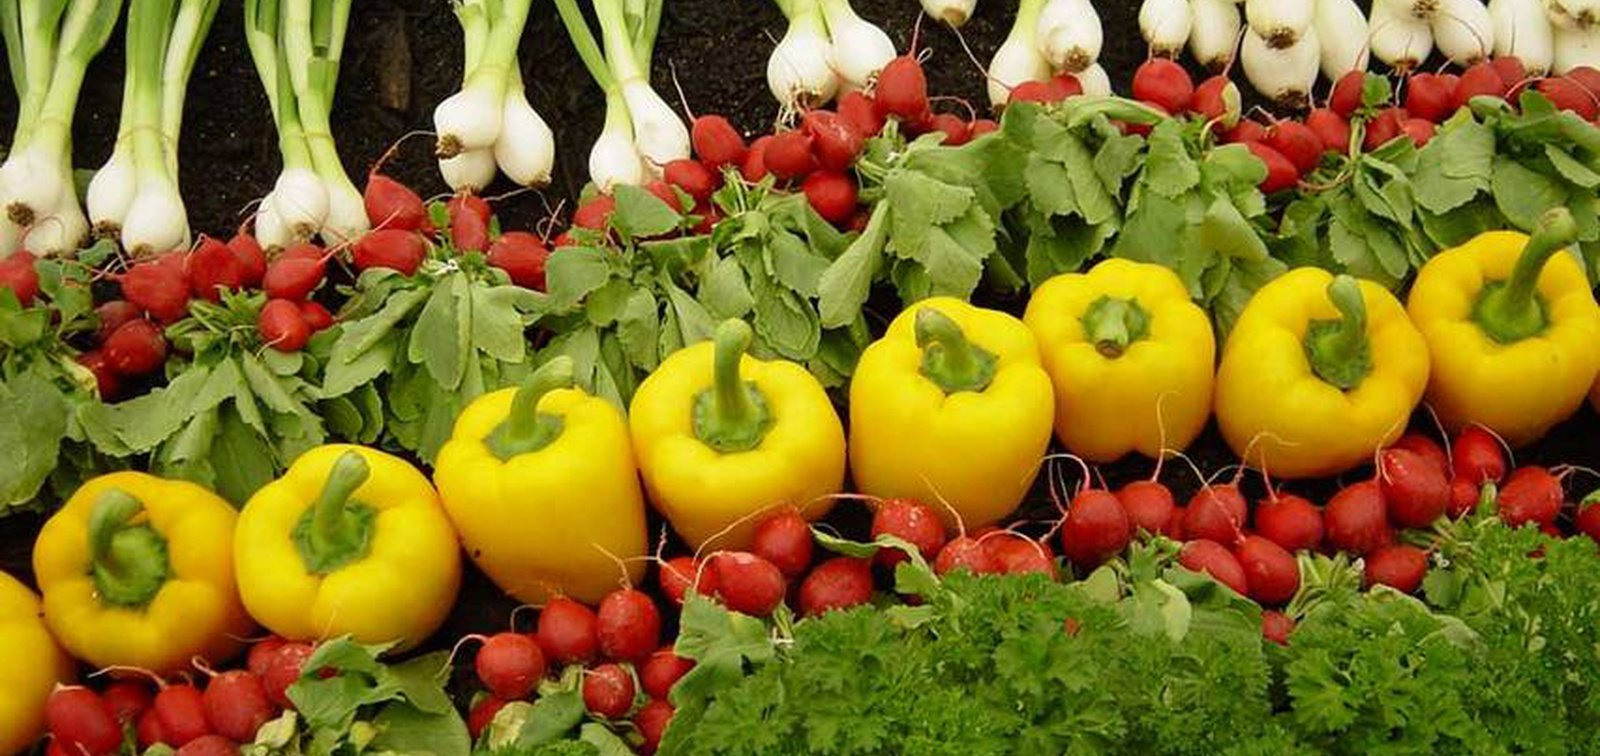 Organic produce sales growth tops 14% in 2020